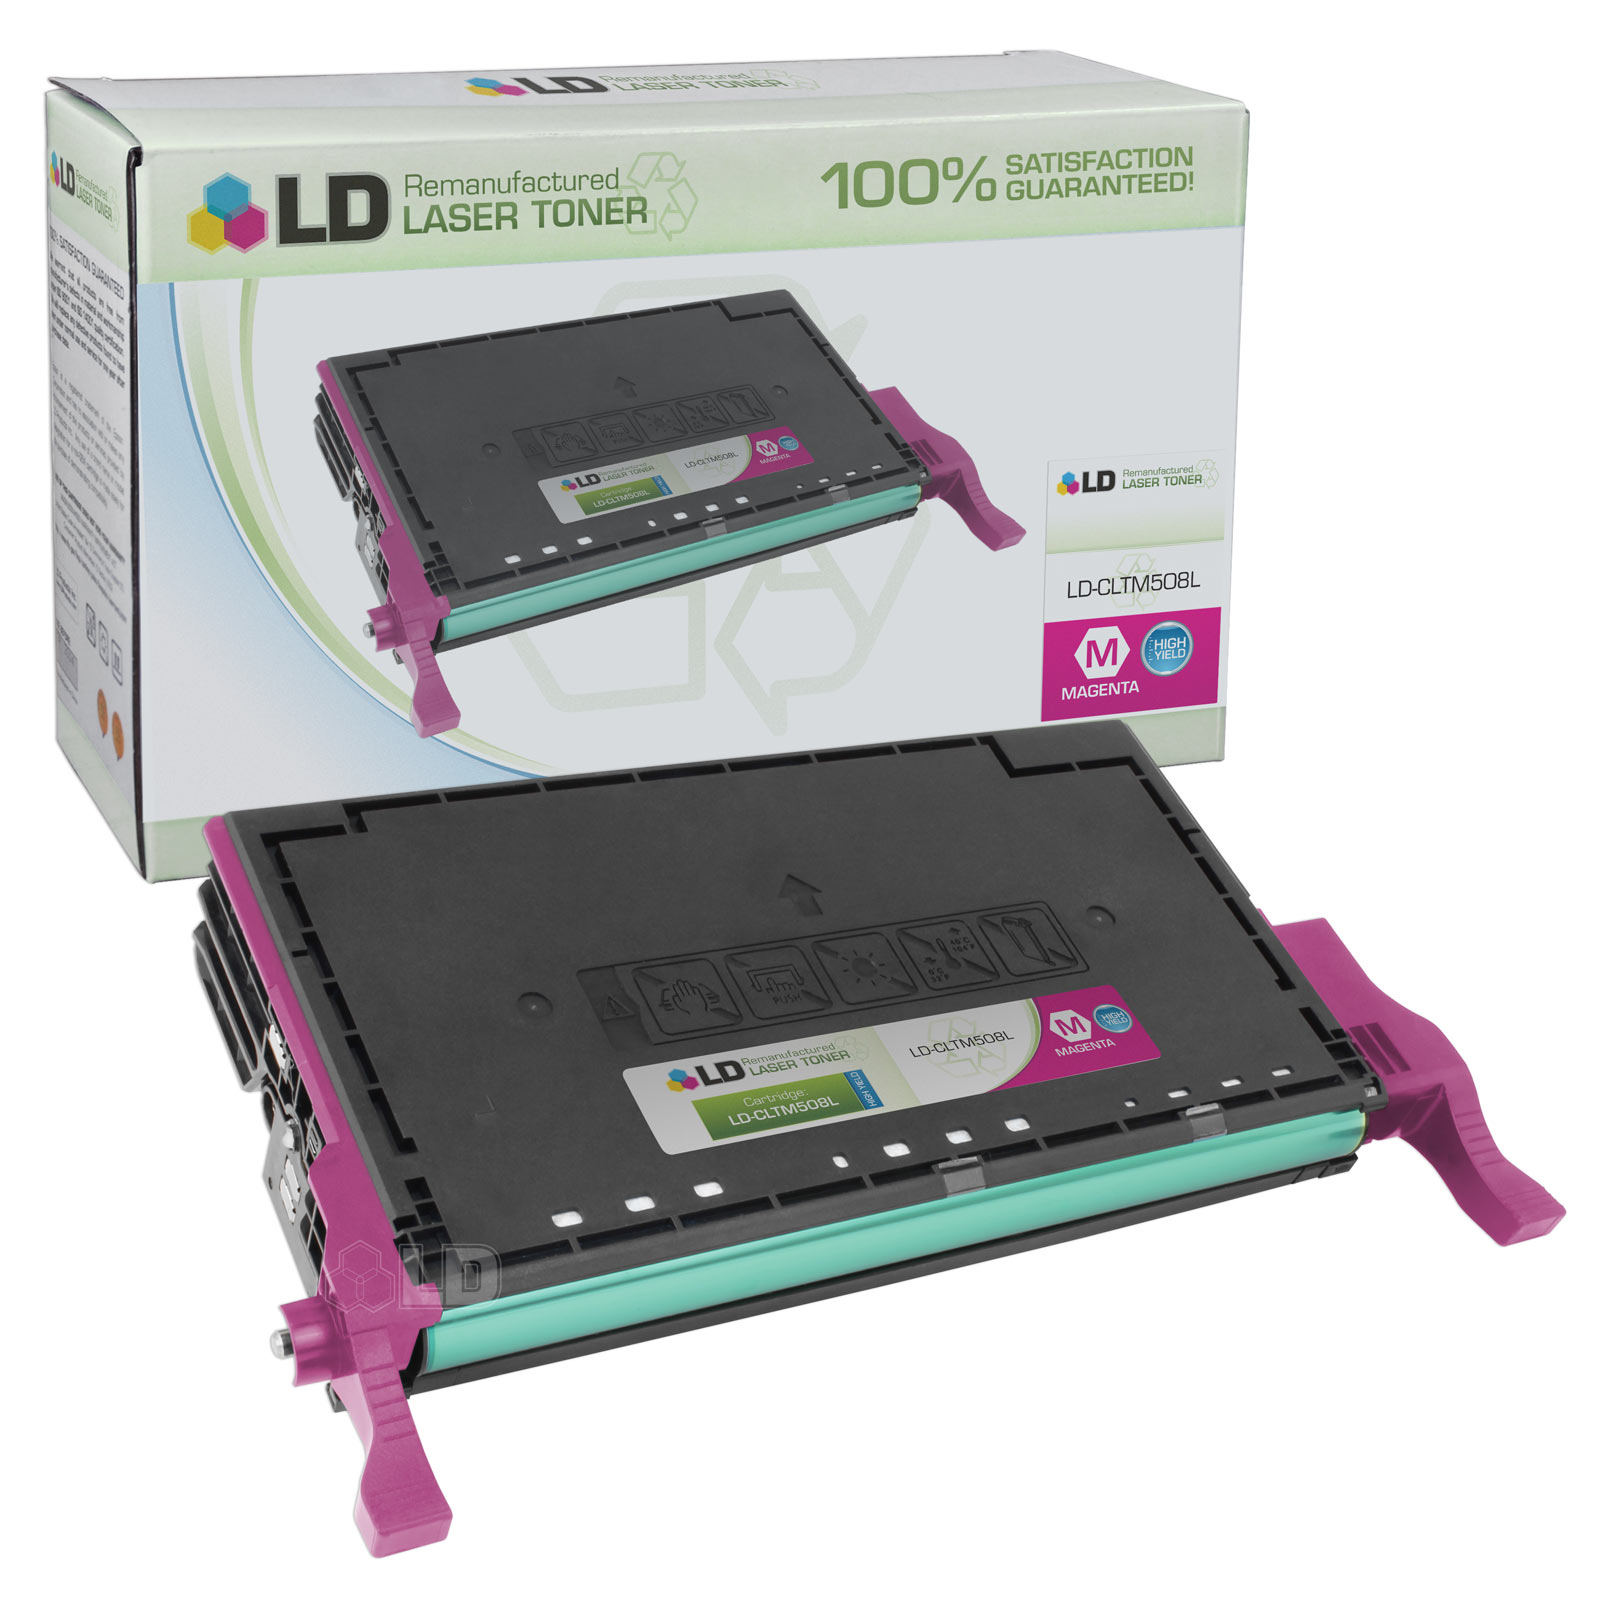 LD Replacement CLT-M508L High Yield Magenta Laser Toner Cartridge for use in the CLP-620ND, CLP-670N, CLP-670ND,